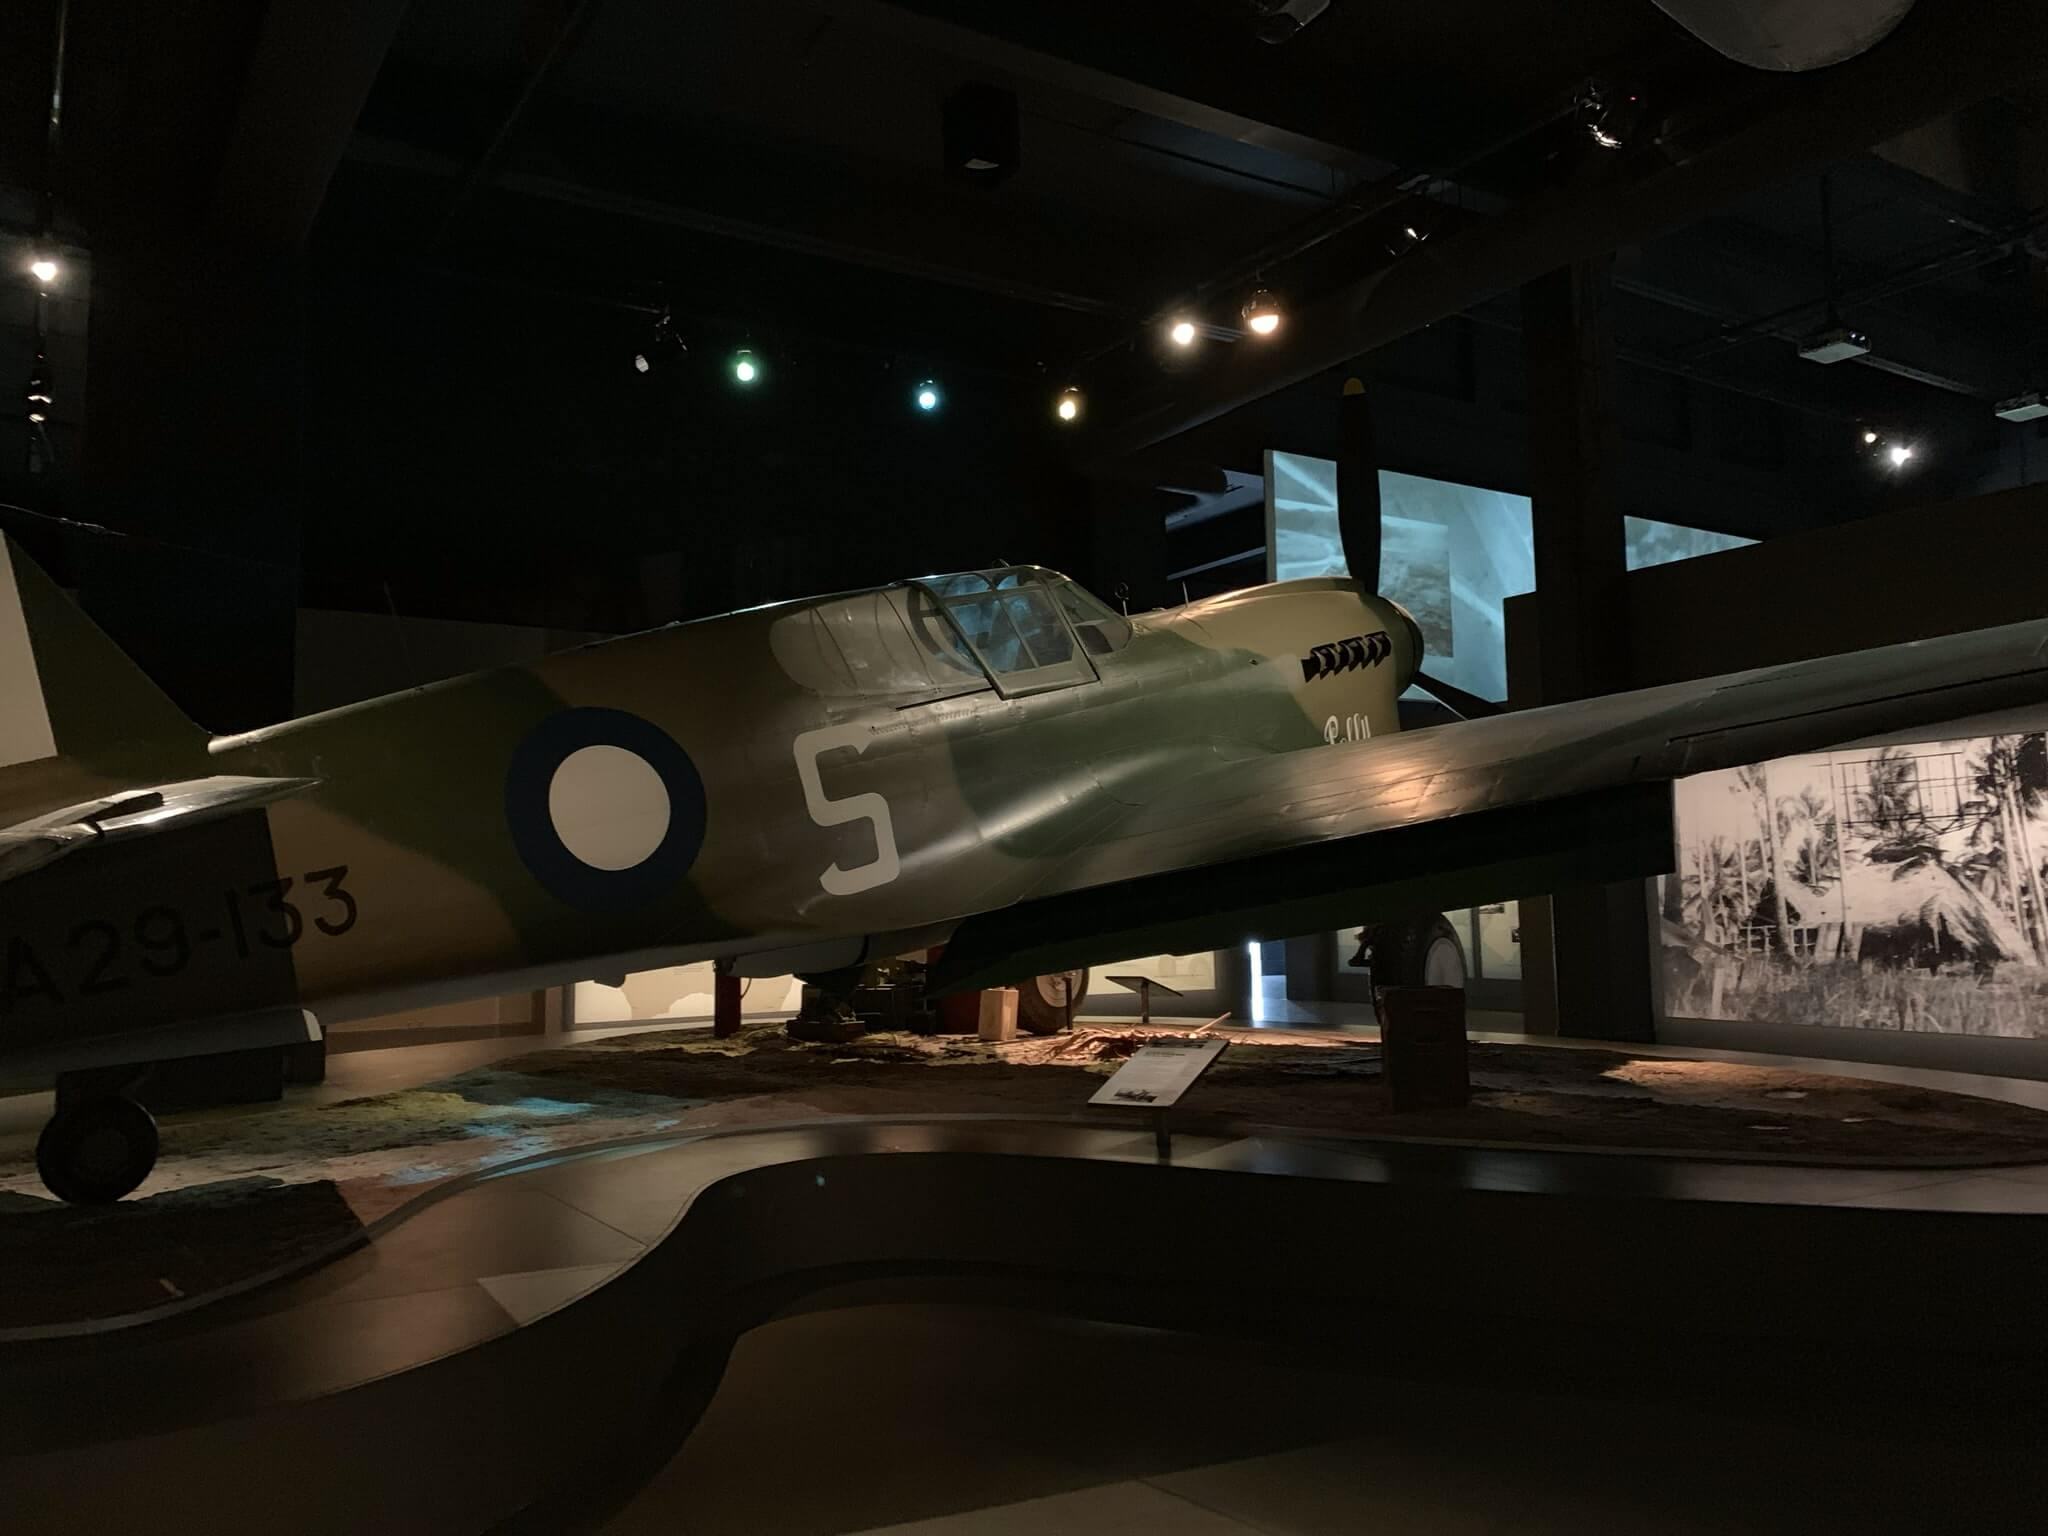 Retired war plane, National Museum of Australia